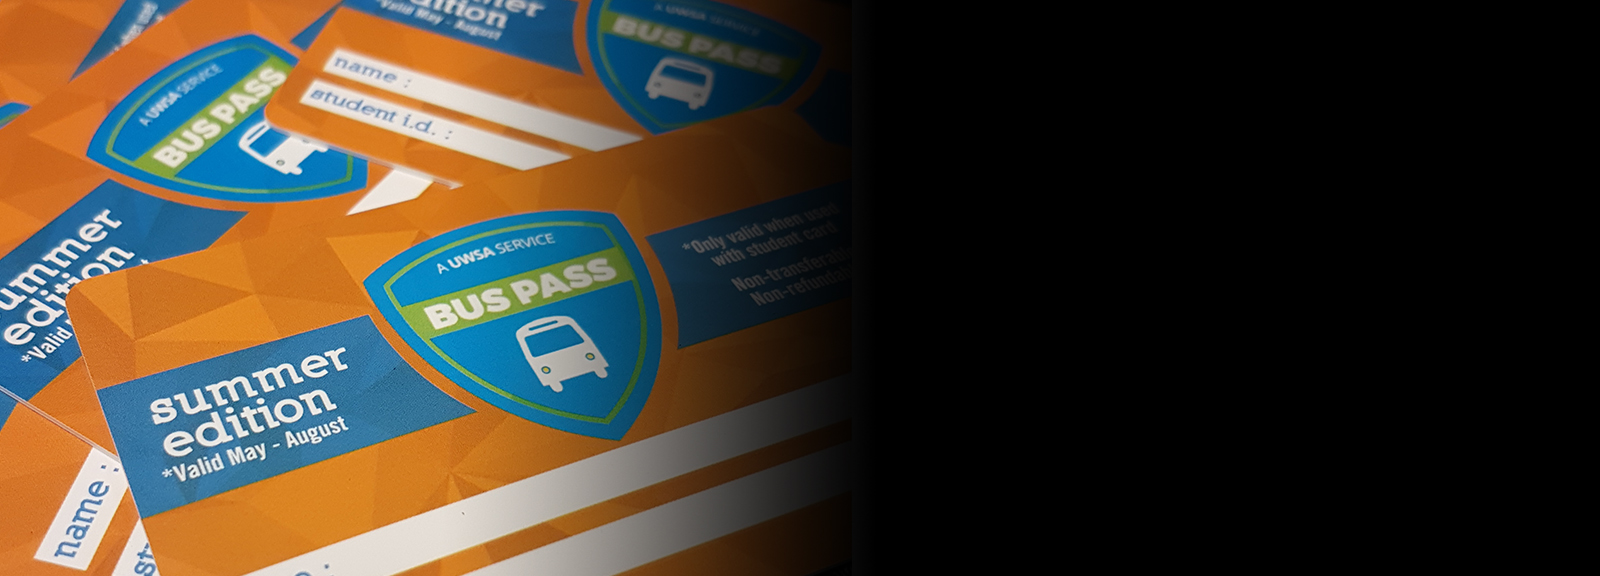 <span>Pick Up your</span><br/>Bus Pass!